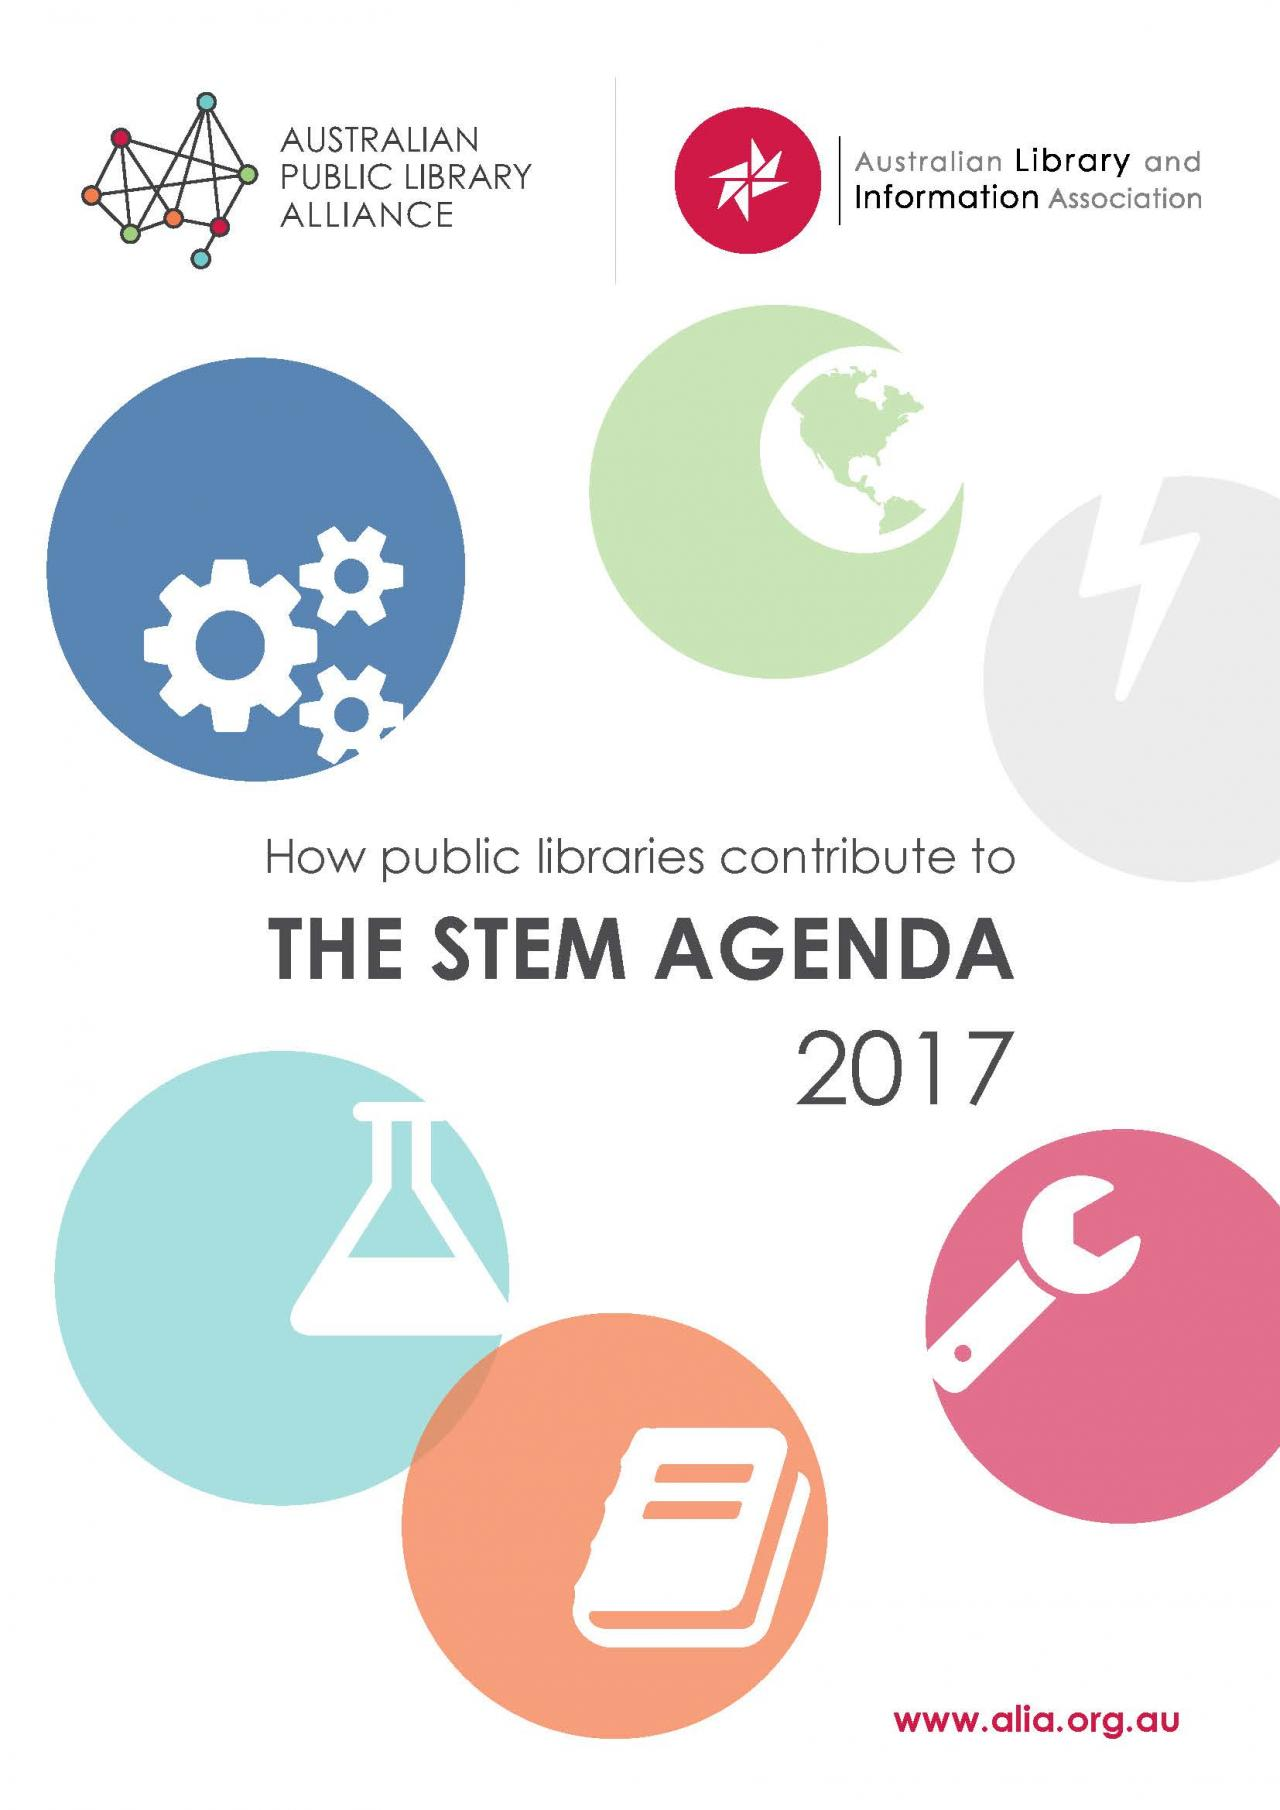 How public libraries contribute to the STEM agenda